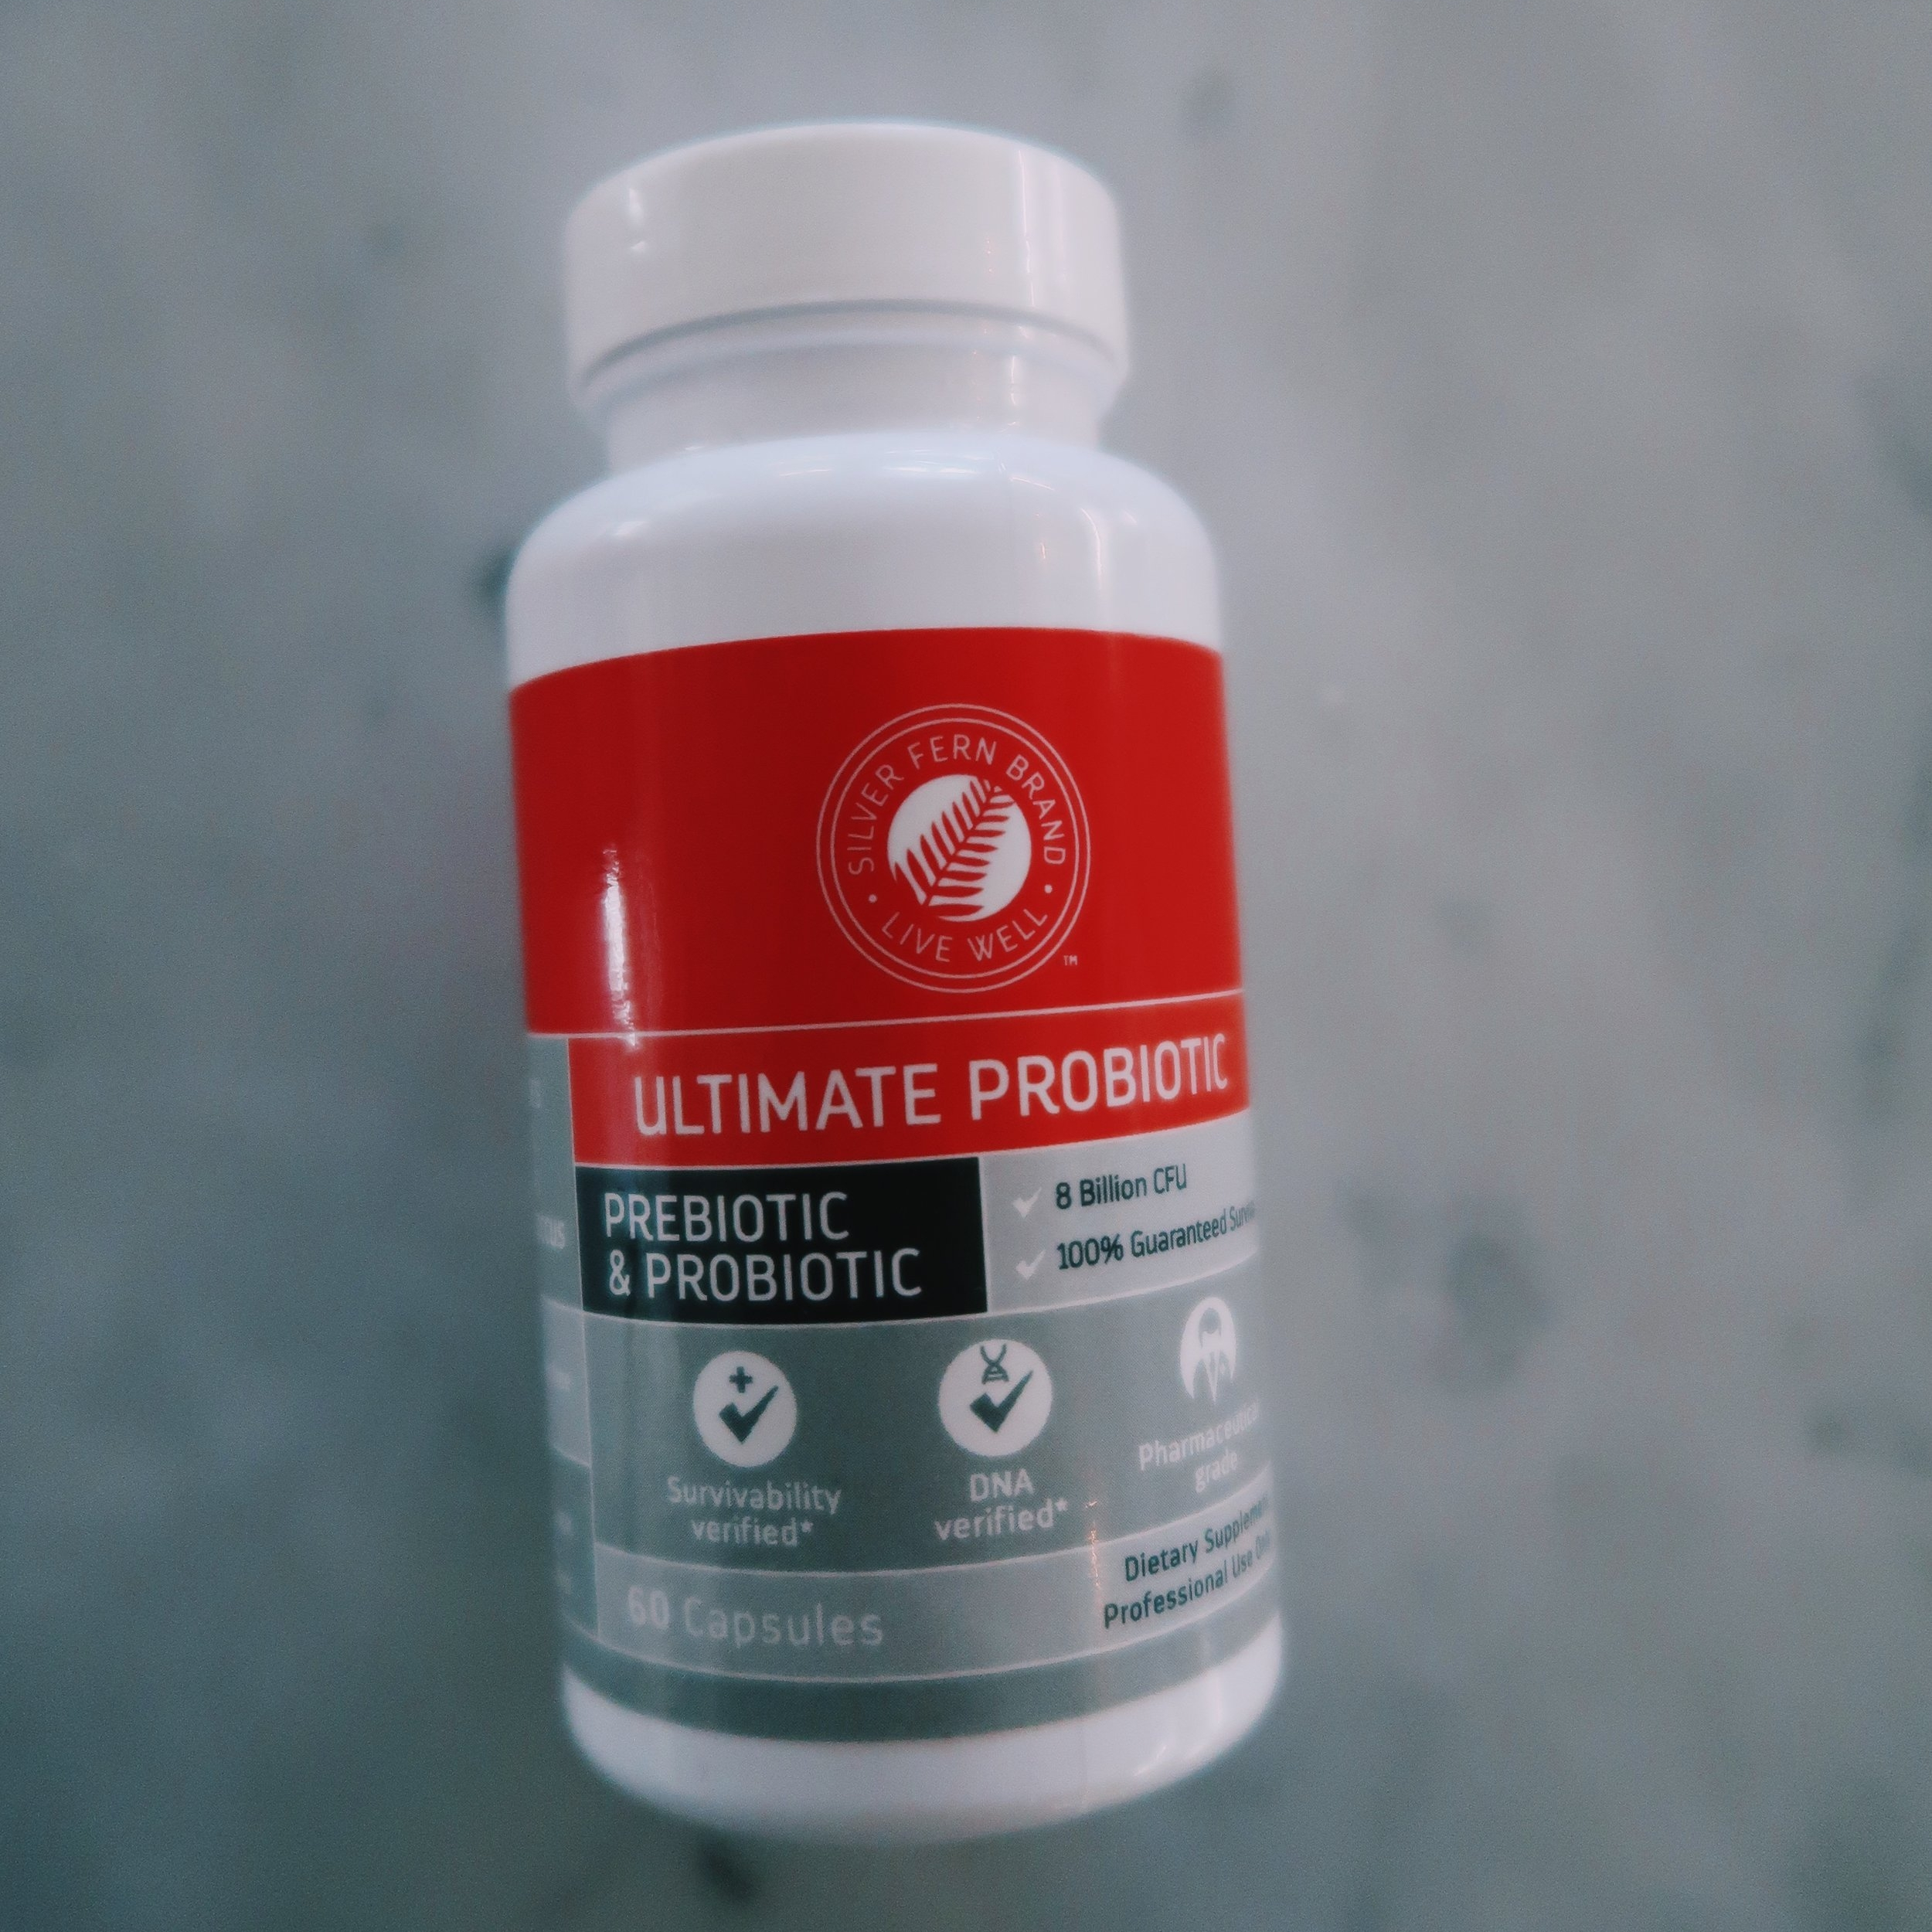 SILVER FERN ULTIMATE PROBIOTIC - Okay, okay, it might not be the most exciting gift in the world - it's a probiotic for God sake. But I'll tell you something, giving the gift of good gut health is EVERYTHING, and anyone who's ever had digestion issues will thank you for this gift. I've been taking the SAME product for over 2 years now, and I go to the bathroom regularly, have minimal to NO bloating, and I no longer have to worry about constipation because that was a thing of the past. The Silver Fern Brand Ultimate Probiotic is a friggin' game changer, so go ahead, order yourself a couple of bottles, homie! ($47)